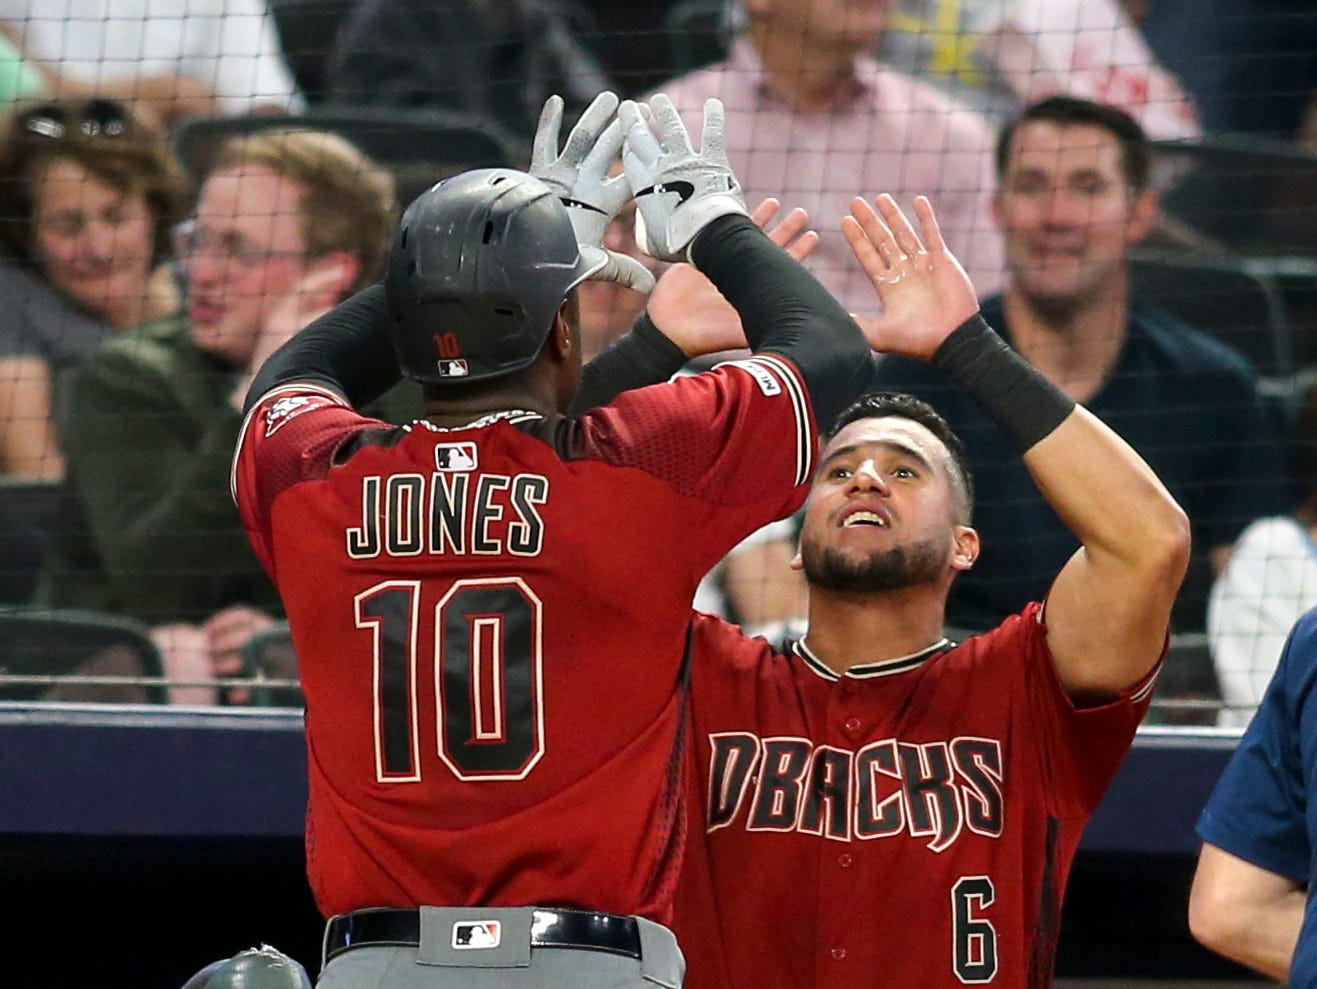 Apr 17, 2019; Atlanta, GA, USA; Arizona Diamondbacks right fielder Adam Jones (10) celebrates with left fielder David Peralta (6) after hitting a home run against the Atlanta Braves in the fourth inning at SunTrust Park. Mandatory Credit: Brett Davis-USA TODAY Sports